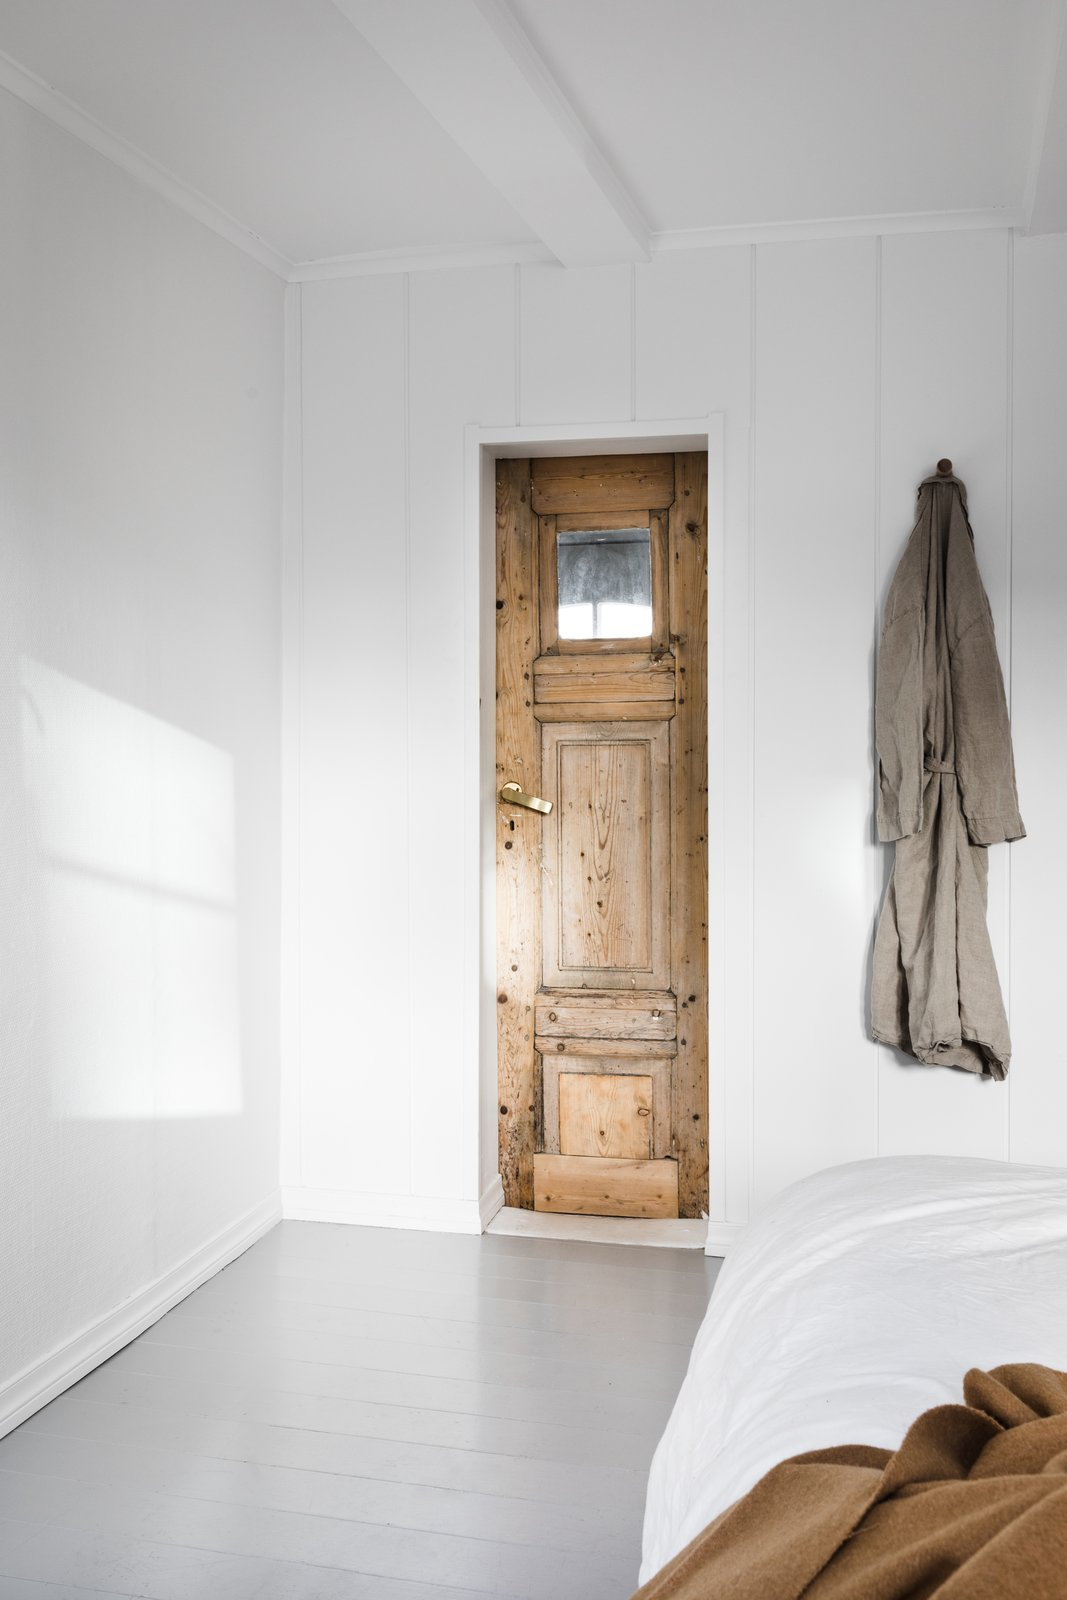 Bedroom, Bed, and Painted Wood Floor To maximize the limited floor area, Saunders ripped down all the non-structural walls to open up the interiors, so the spaces feel roomier.  Photo 10 of 12 in An 18th-Century Townhouse Is Now a Chic Norwegian Rental